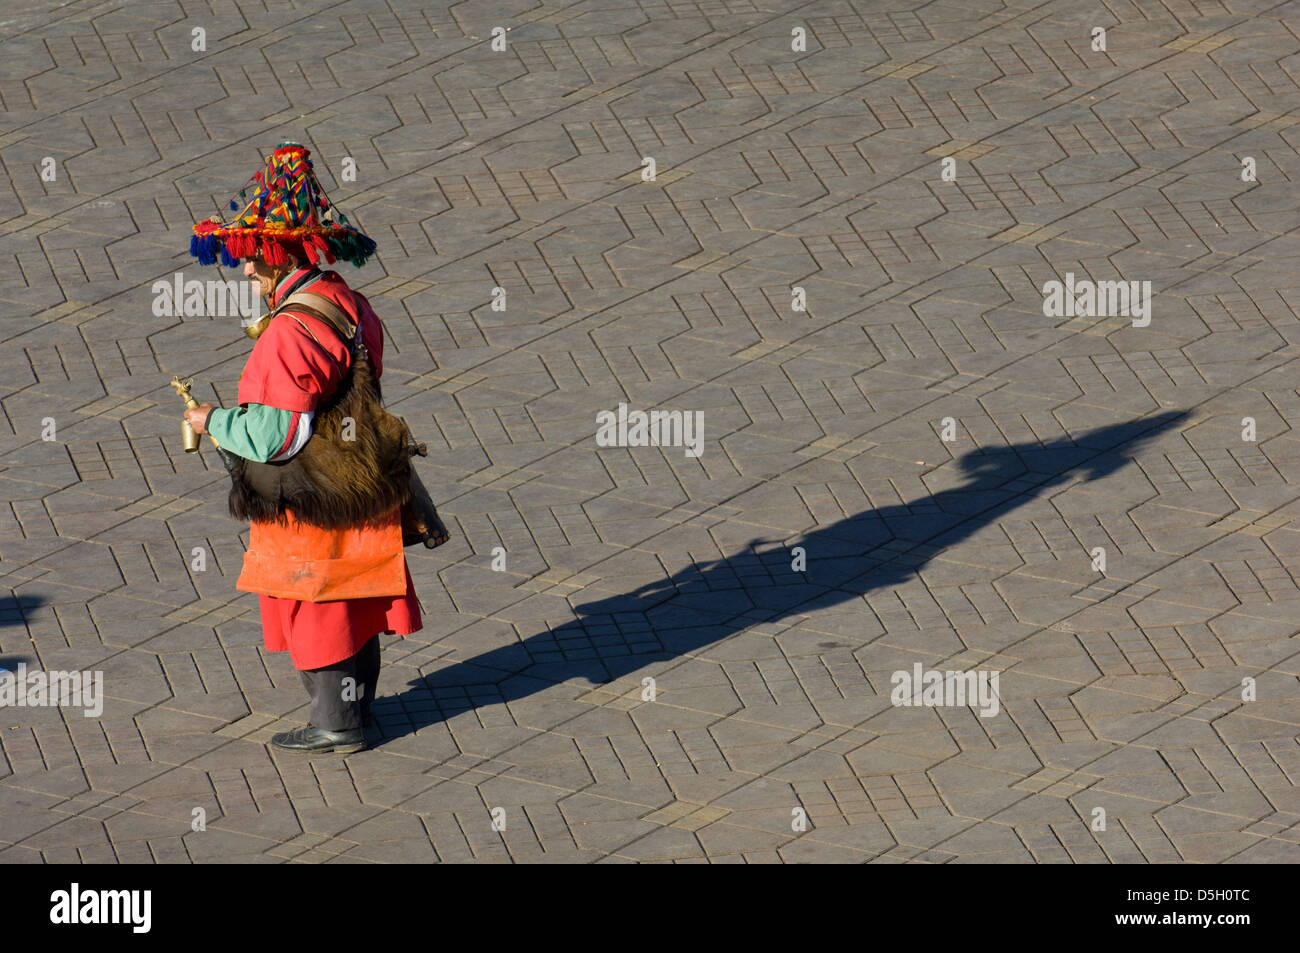 Traditional water-carrier dressed in red in the Djemaa el-Fna square, Marrakech, Morocco - Stock Image